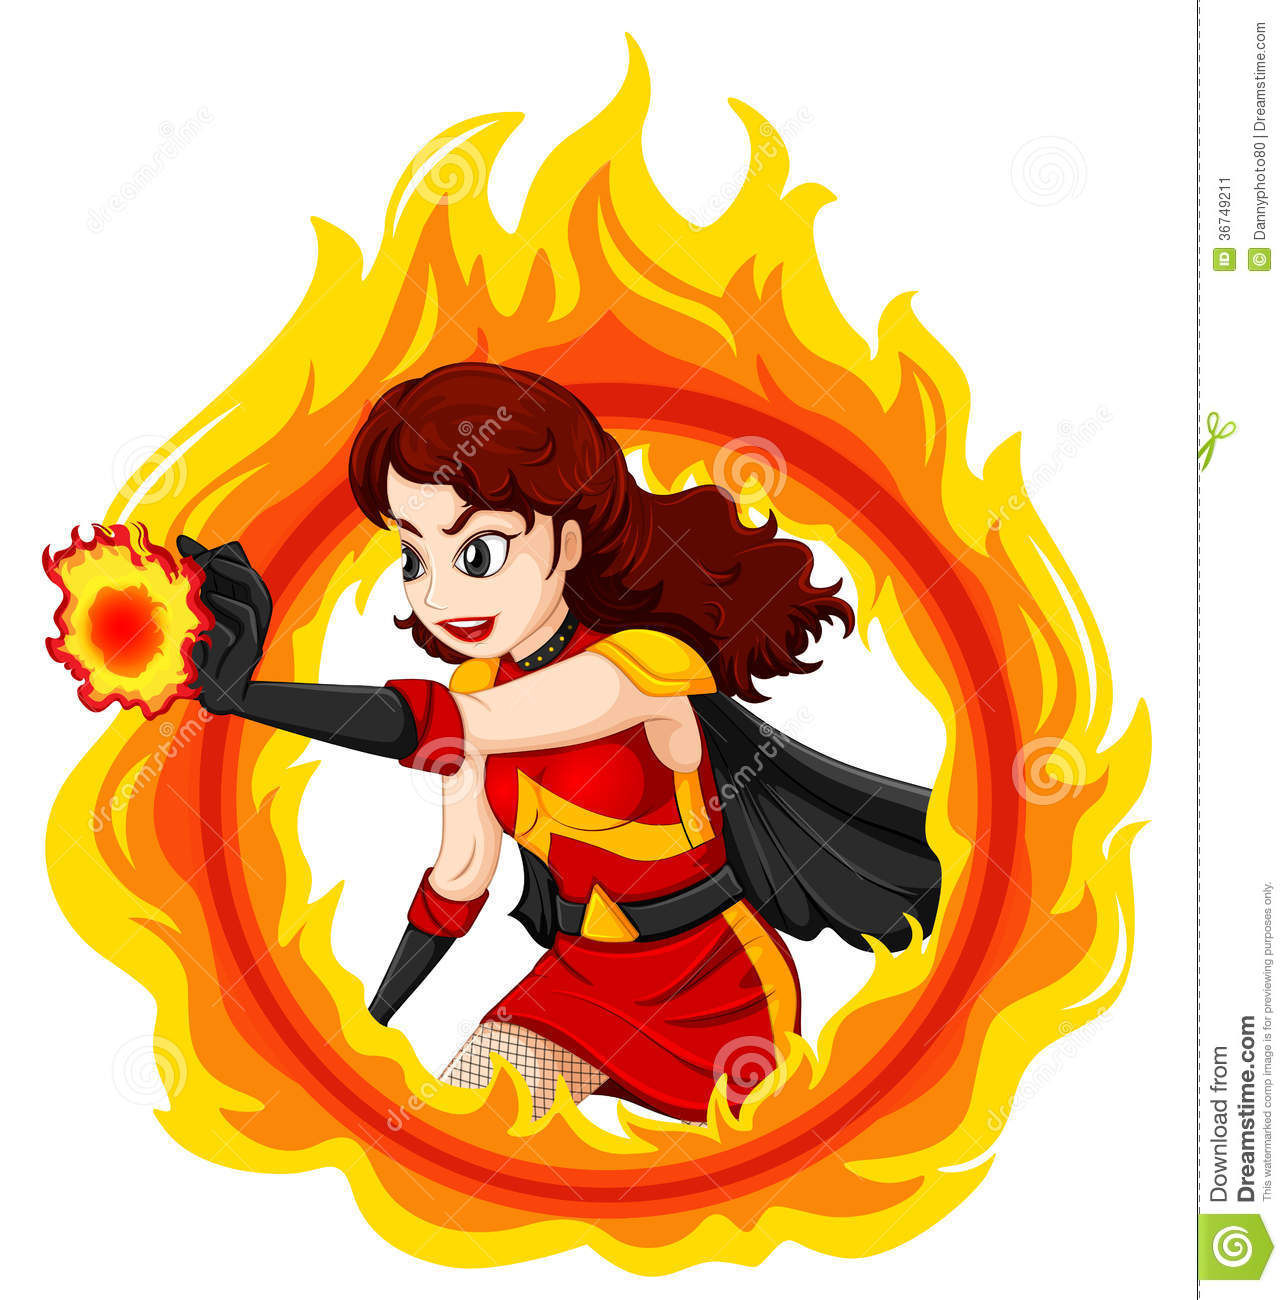 Illustration of a flaming female superhero on a white background.